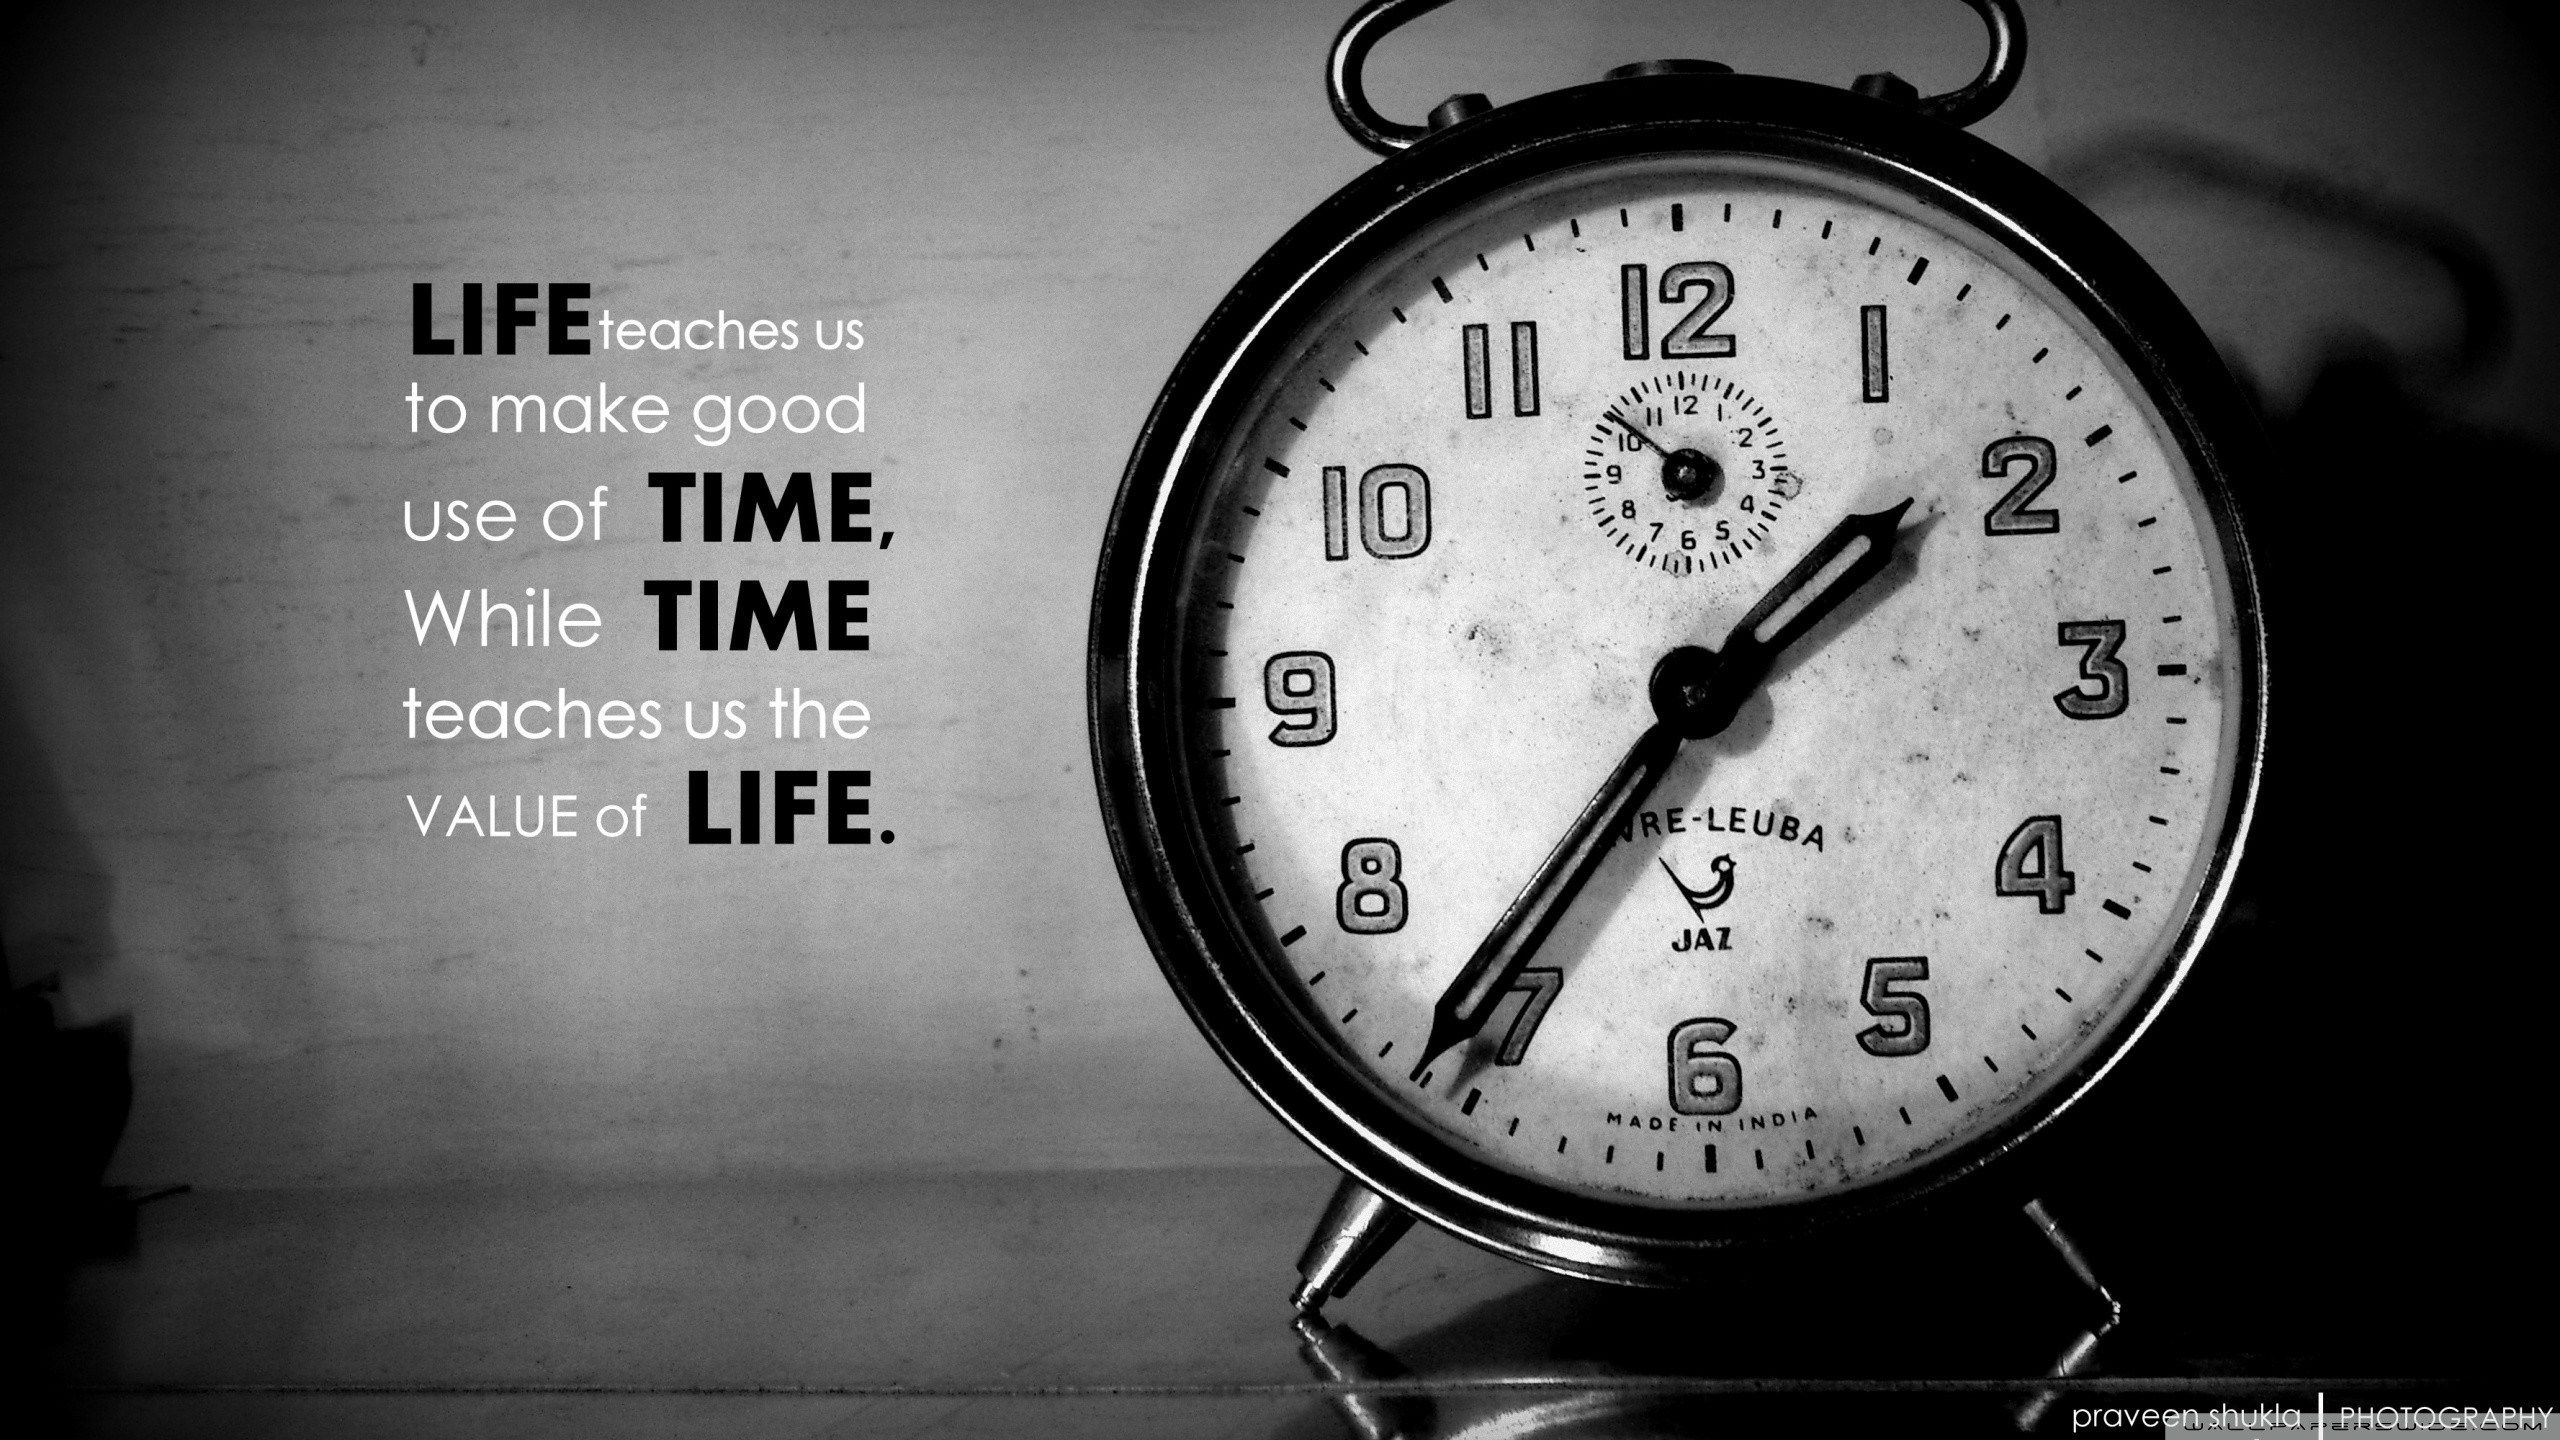 2560x1440 Image For Desktop Clock Life Quotes Wallpaper Time Quotes Good Life Quotes